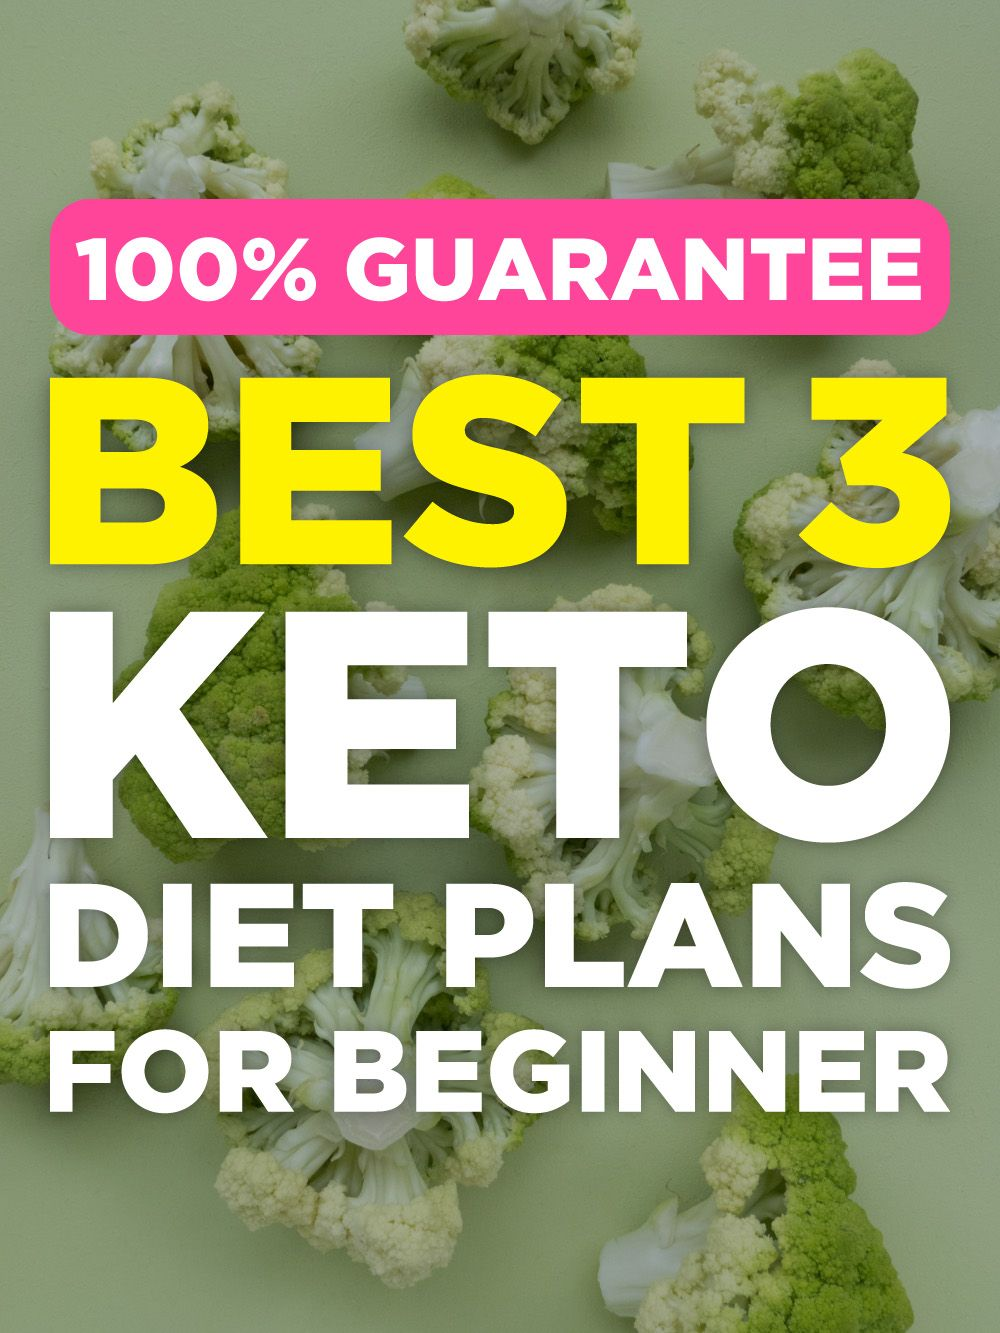 profile diet recipes, low carb hacks, low carb easy, weight loss cleanse, mederteranian diet recipes, diet food plan, diabetic diet, starting keto, low carb goodies, weight lose meals, gerd diet recipes, what not to eat on keto diet, clean eating recipes, low fat low carb, ways to lose weight fast quick, weight motivation loss, low carb diet meals, keto recipes easy low carb, protien diet, weight loss nutrition plan, i need to lose weight fast,